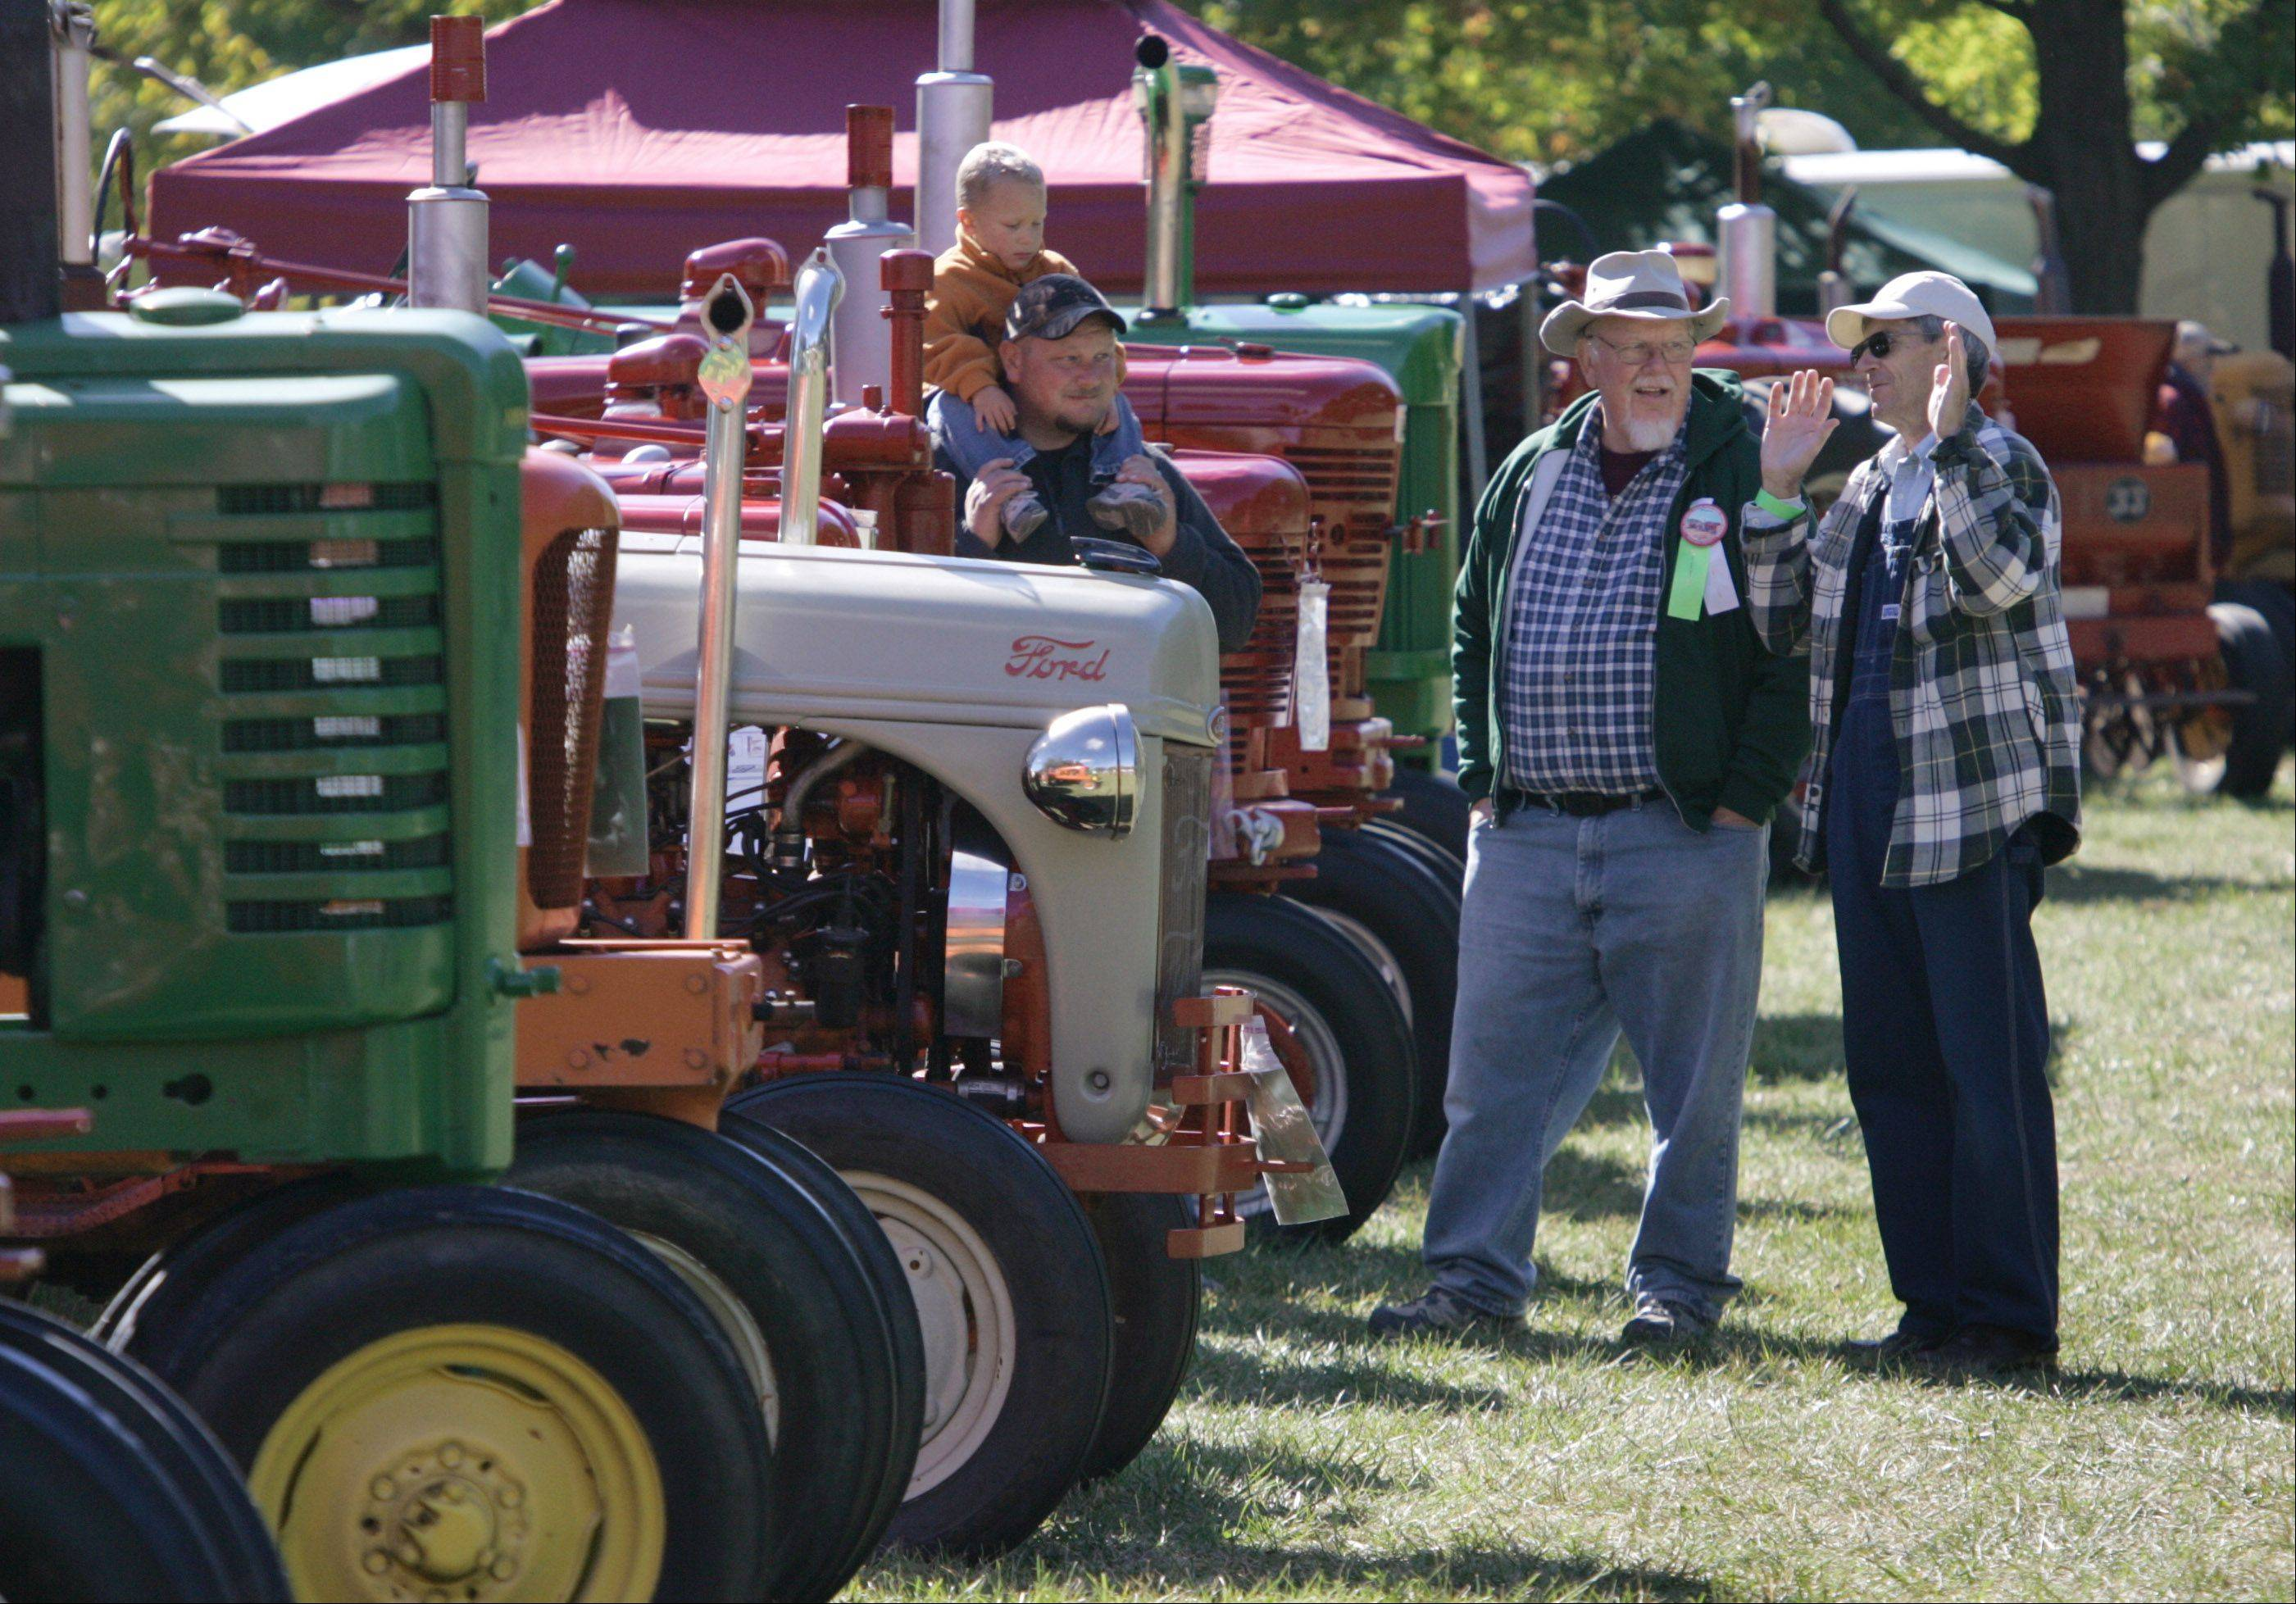 Ron Vaughan, of Wauconda, right, talks about tractors with Will Werhane, of Grayslake, during the 20th Annual Farm Heritage Festival Sunday at Lakewood Forest Preserve near Wauconda. The event was co-sponsored by the Lake County Discovery Museum and the Lake County Farm Heritage Association.